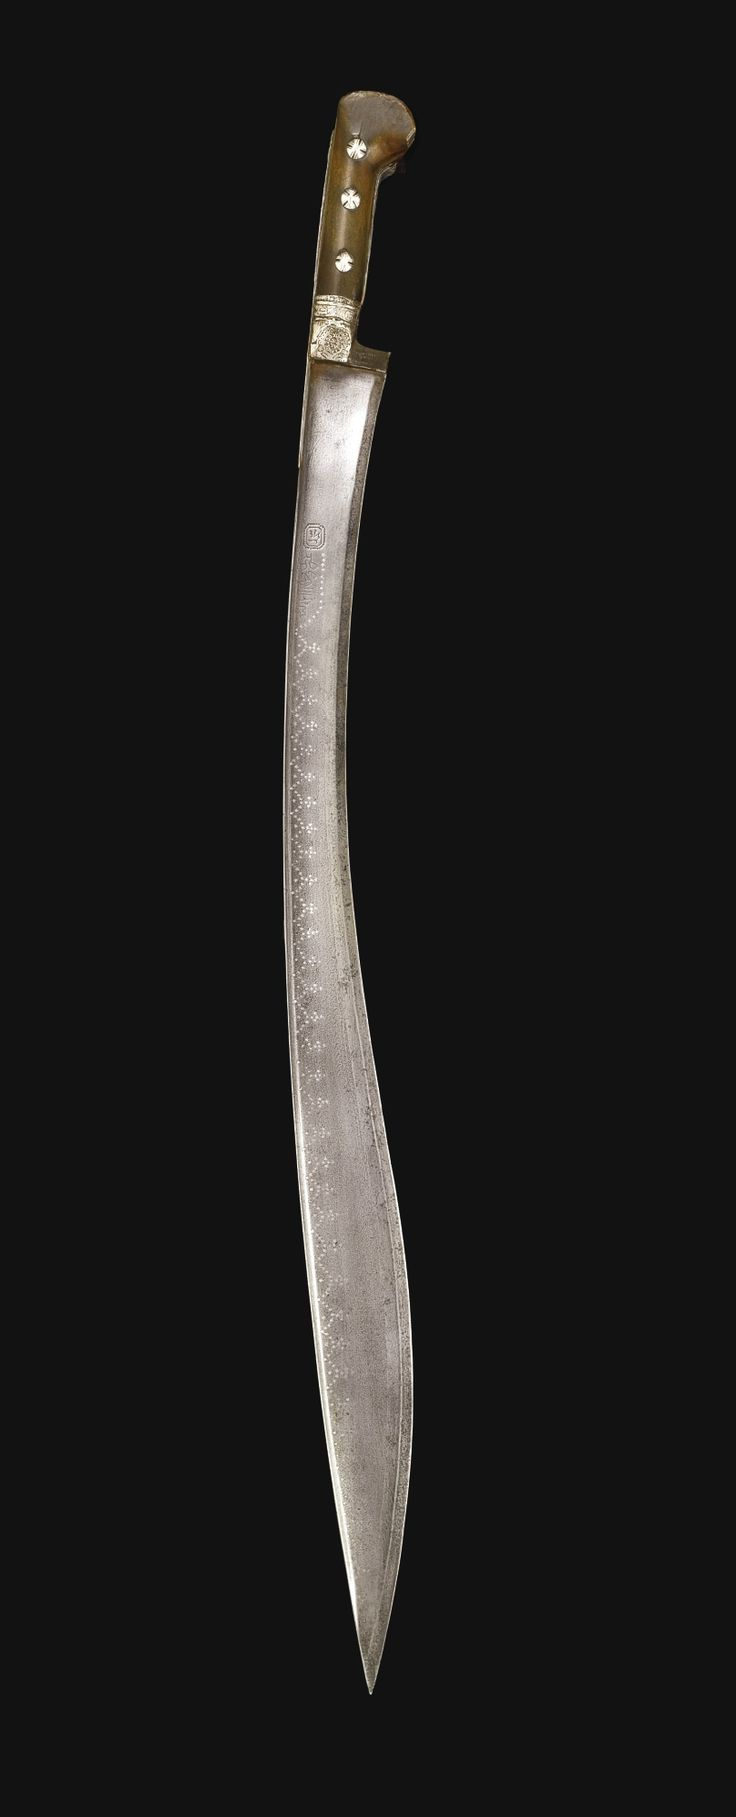 A RARE OTTOMAN HORN-HILTED SWORD (YATAGHAN), TURKEY, DATED 1181 AH/1767 AD the finely watered steel curved blade with a flat back edge and inscriptions along both sides of the blade enclosed in star motifs which continue to decorate the top ridge of the blade, the hilt with horn grips and silver studs, decorated with arabesques on the tang, applied silver floral decoration at the forte